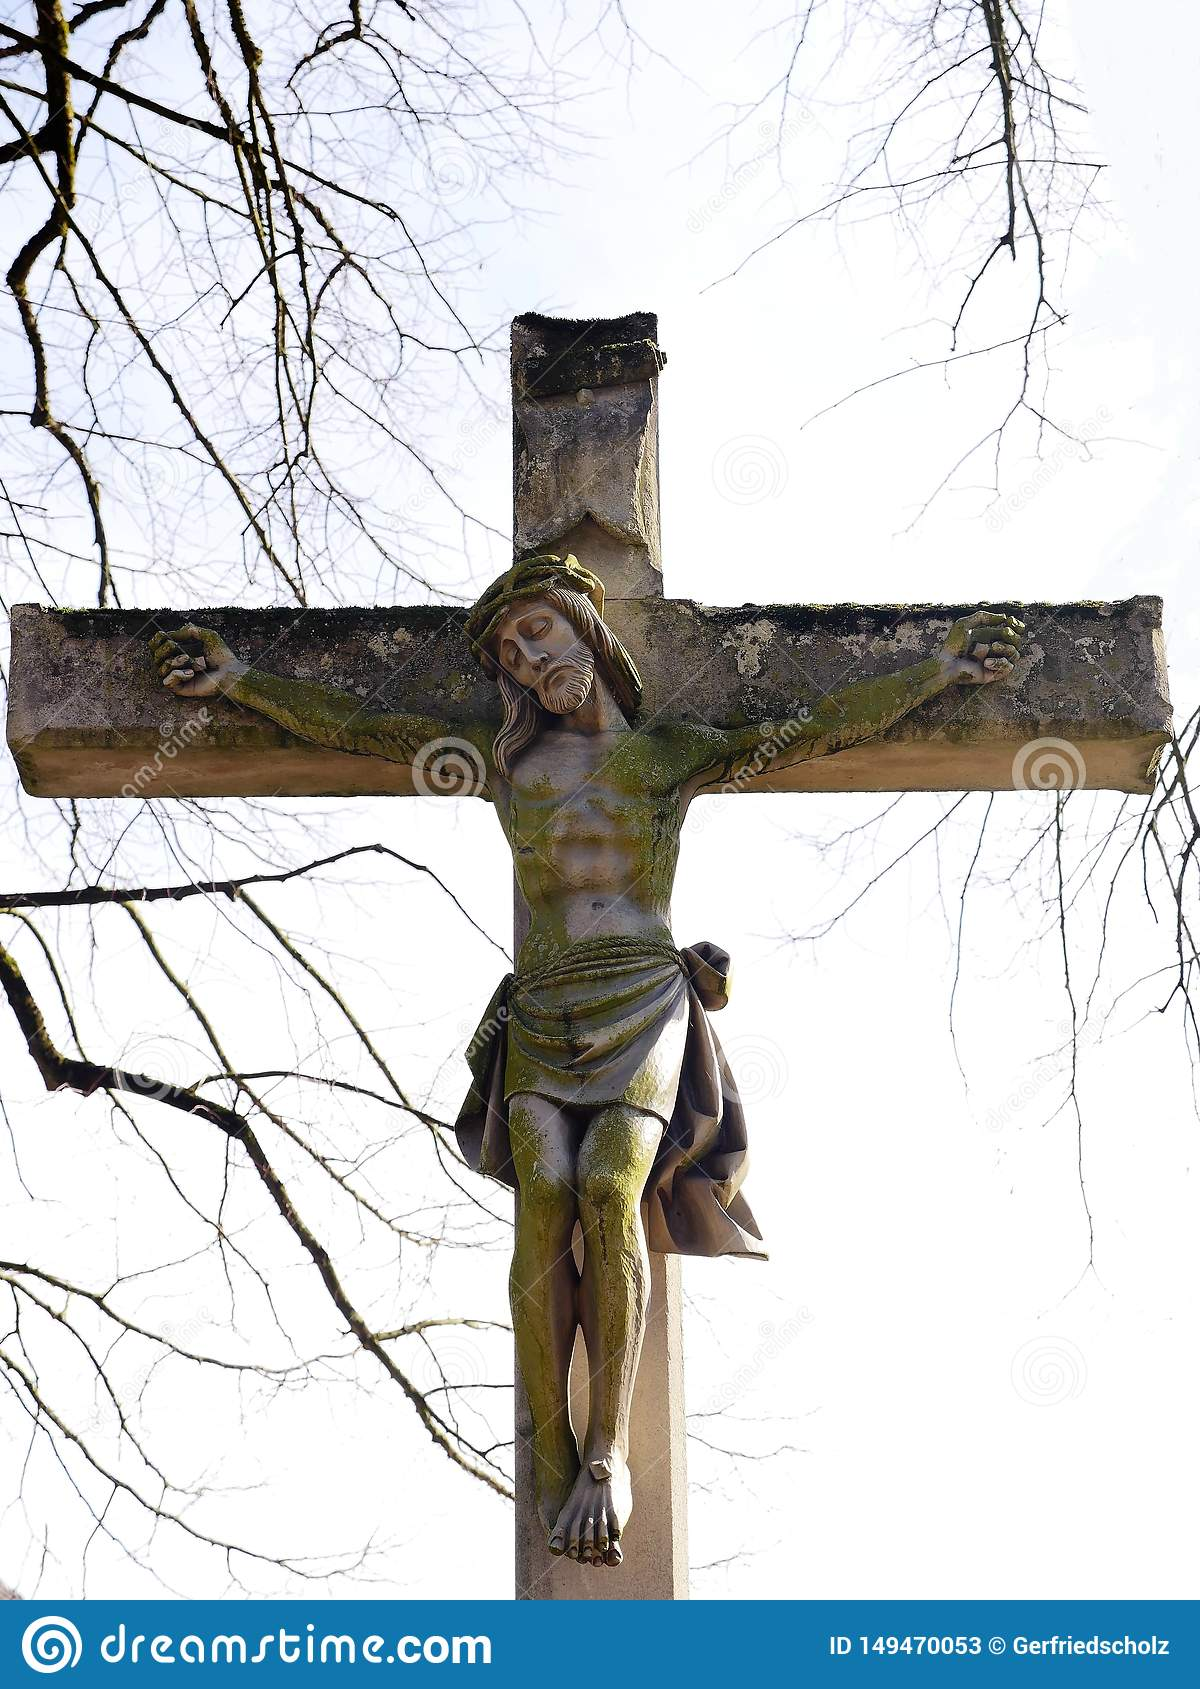 This Christian cross, with crucified Jesus, a symbol of piety, was erected in 1889 by Countess Ansembourg